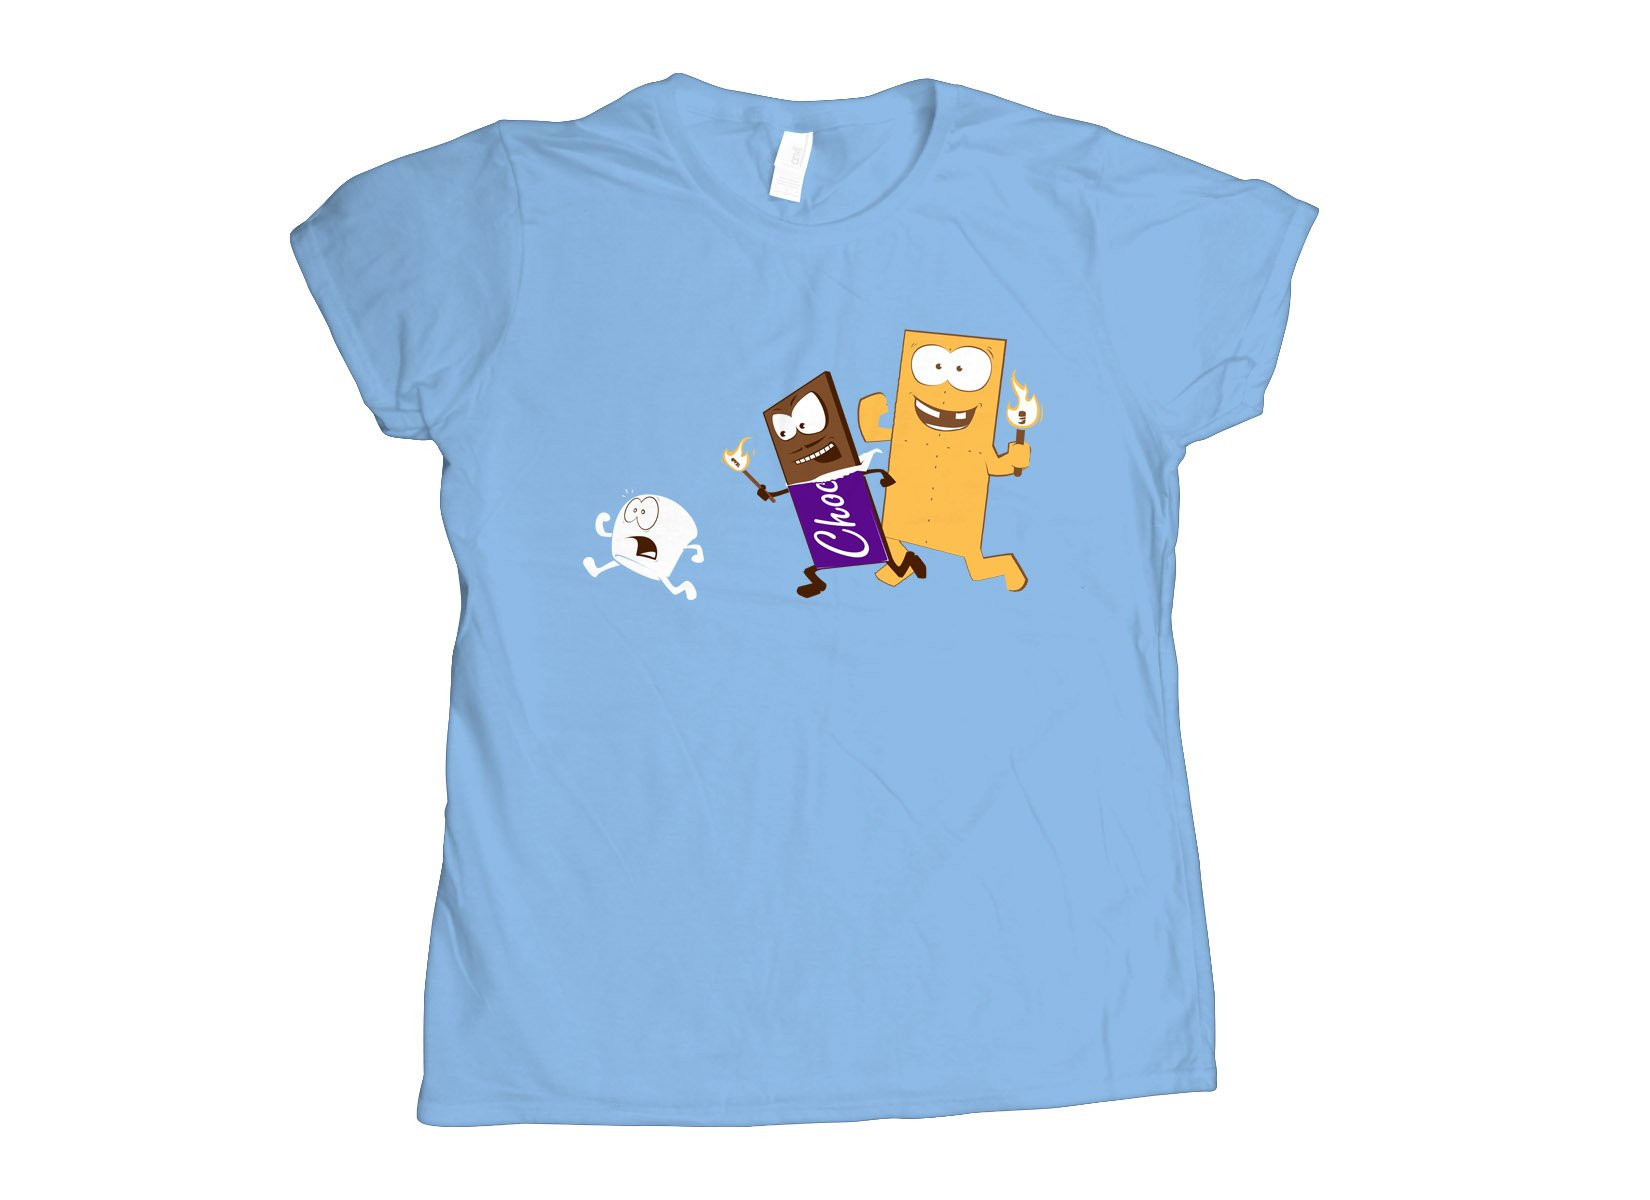 S'more on Womens T-Shirt